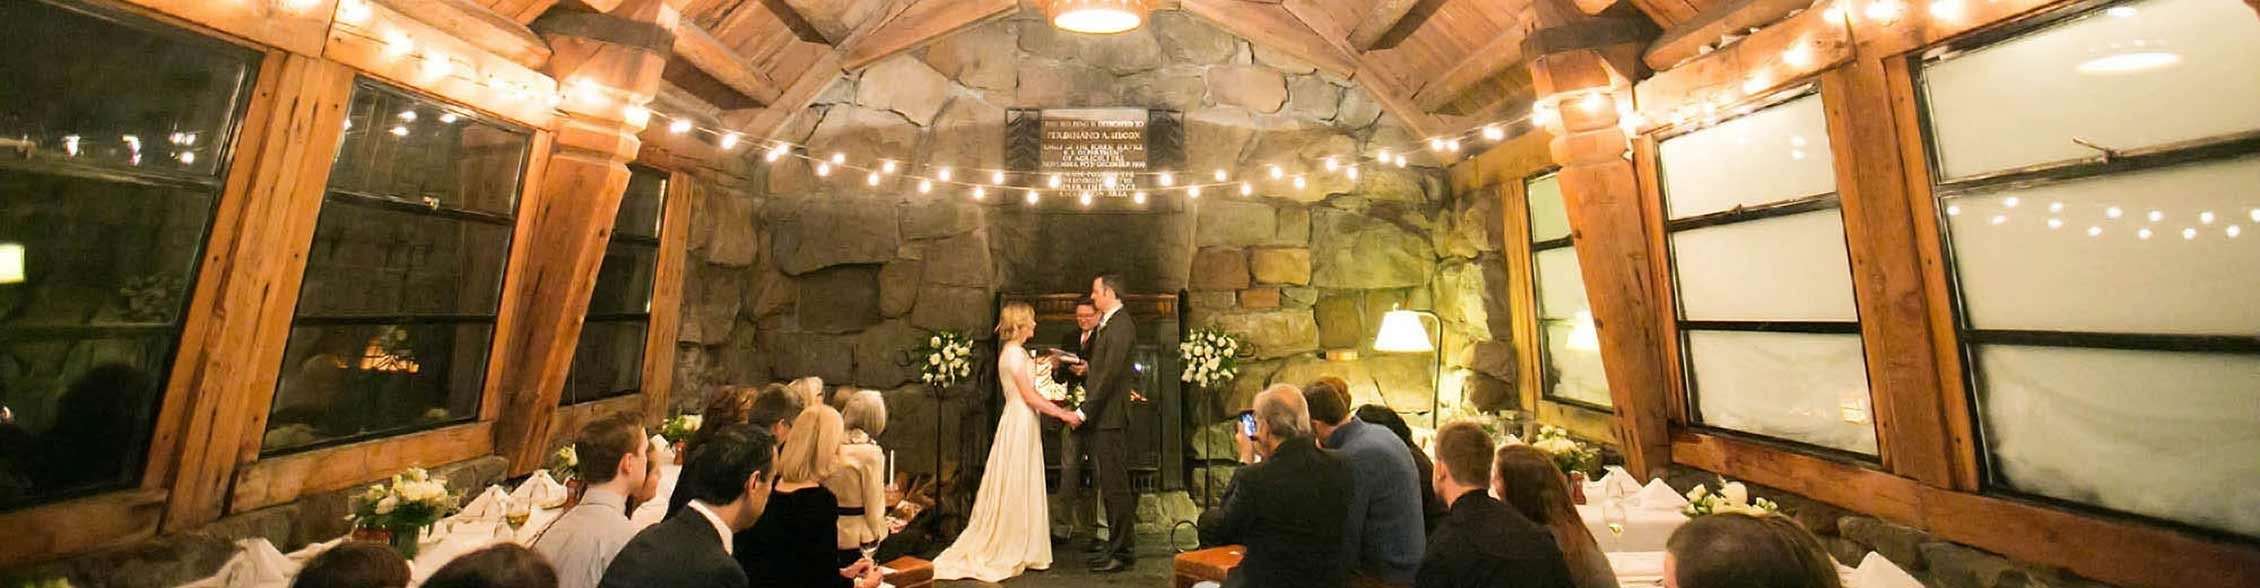 SILCOX HUT WEDDINGS